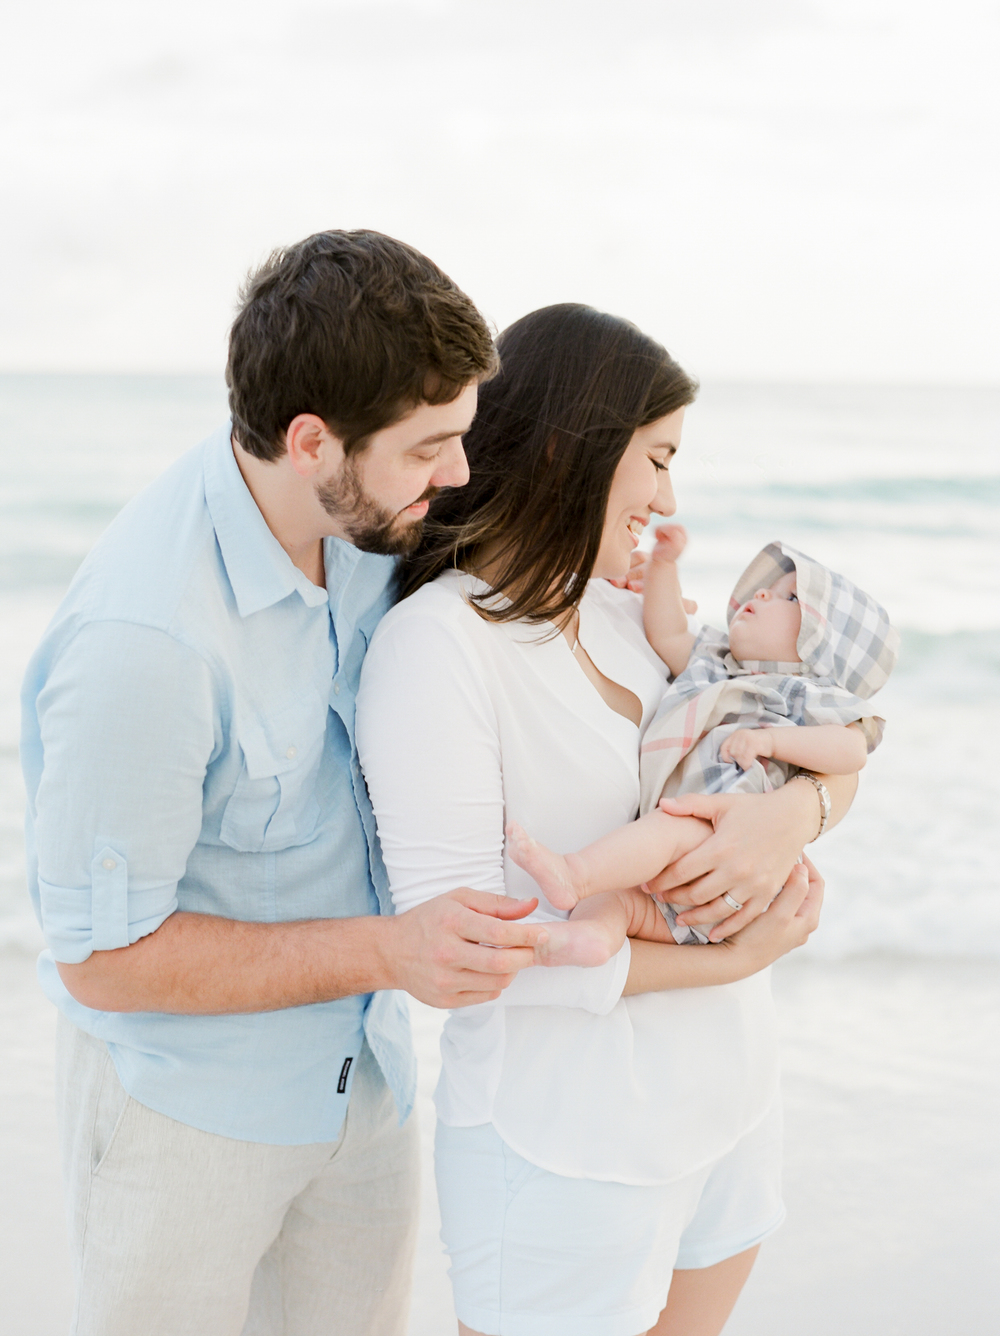 Babys first time at the beach | Kaylie B. Poplin Photography | Okaloosa Island Florida fine art photographer